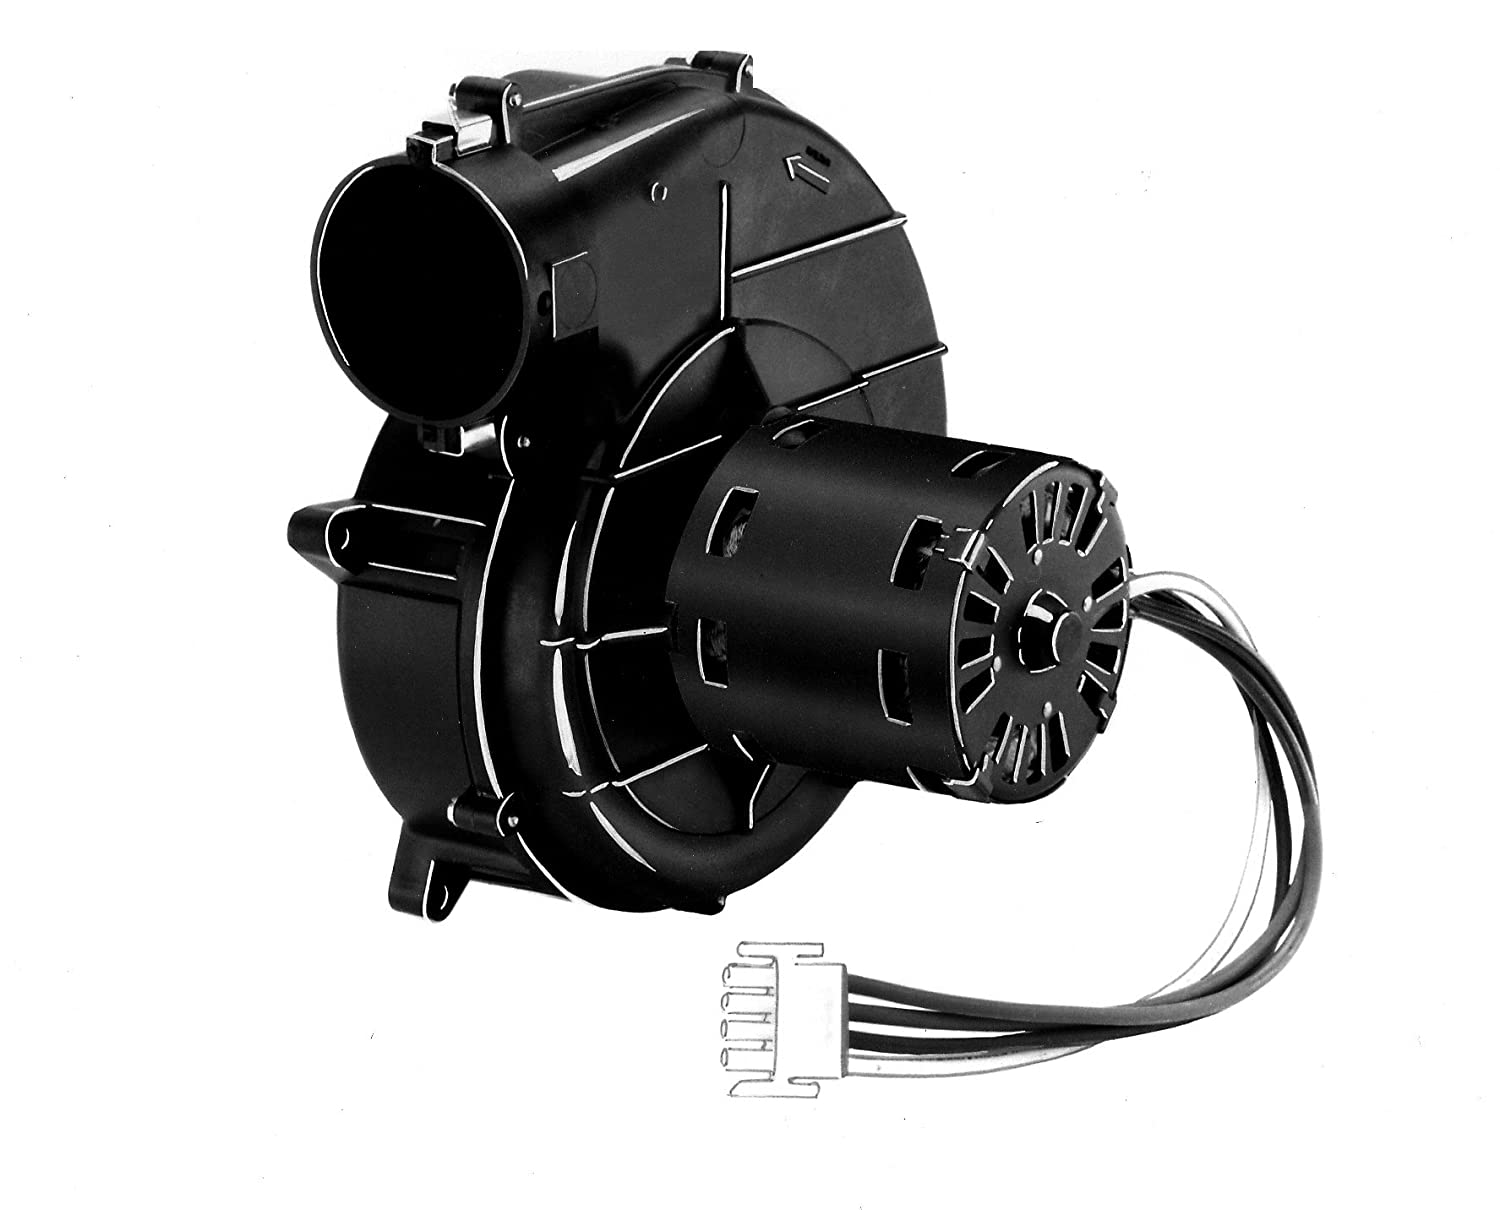 Fasco A136 33 Frame Permanent Split Capacitor Oem Replacement Gas Furnace Blower Motor Wiring Specific Purpose With Sleeve Bearing 1 20hp 3 450 Rpm 115v 60 Hz 075 Amps Industrial Hvac Blowers Scientific